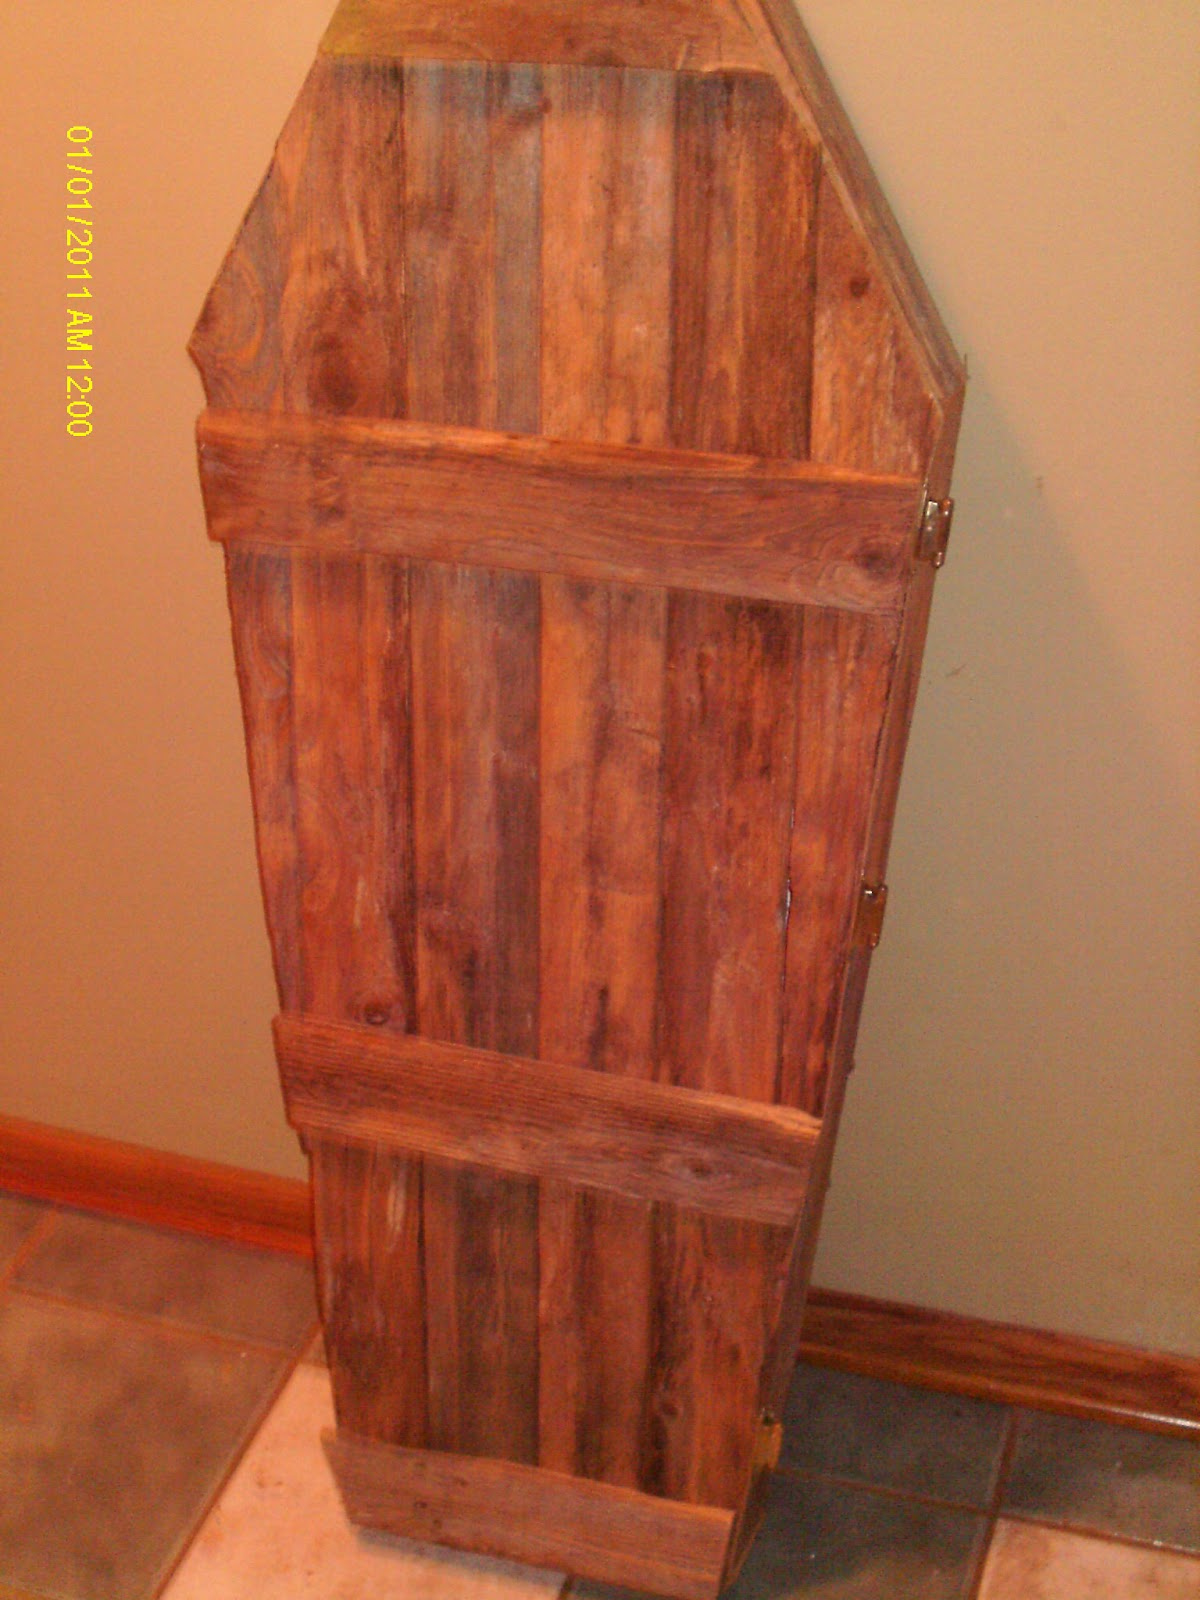 Handmade Rustic Log Furniture Its Almost Holloween Time